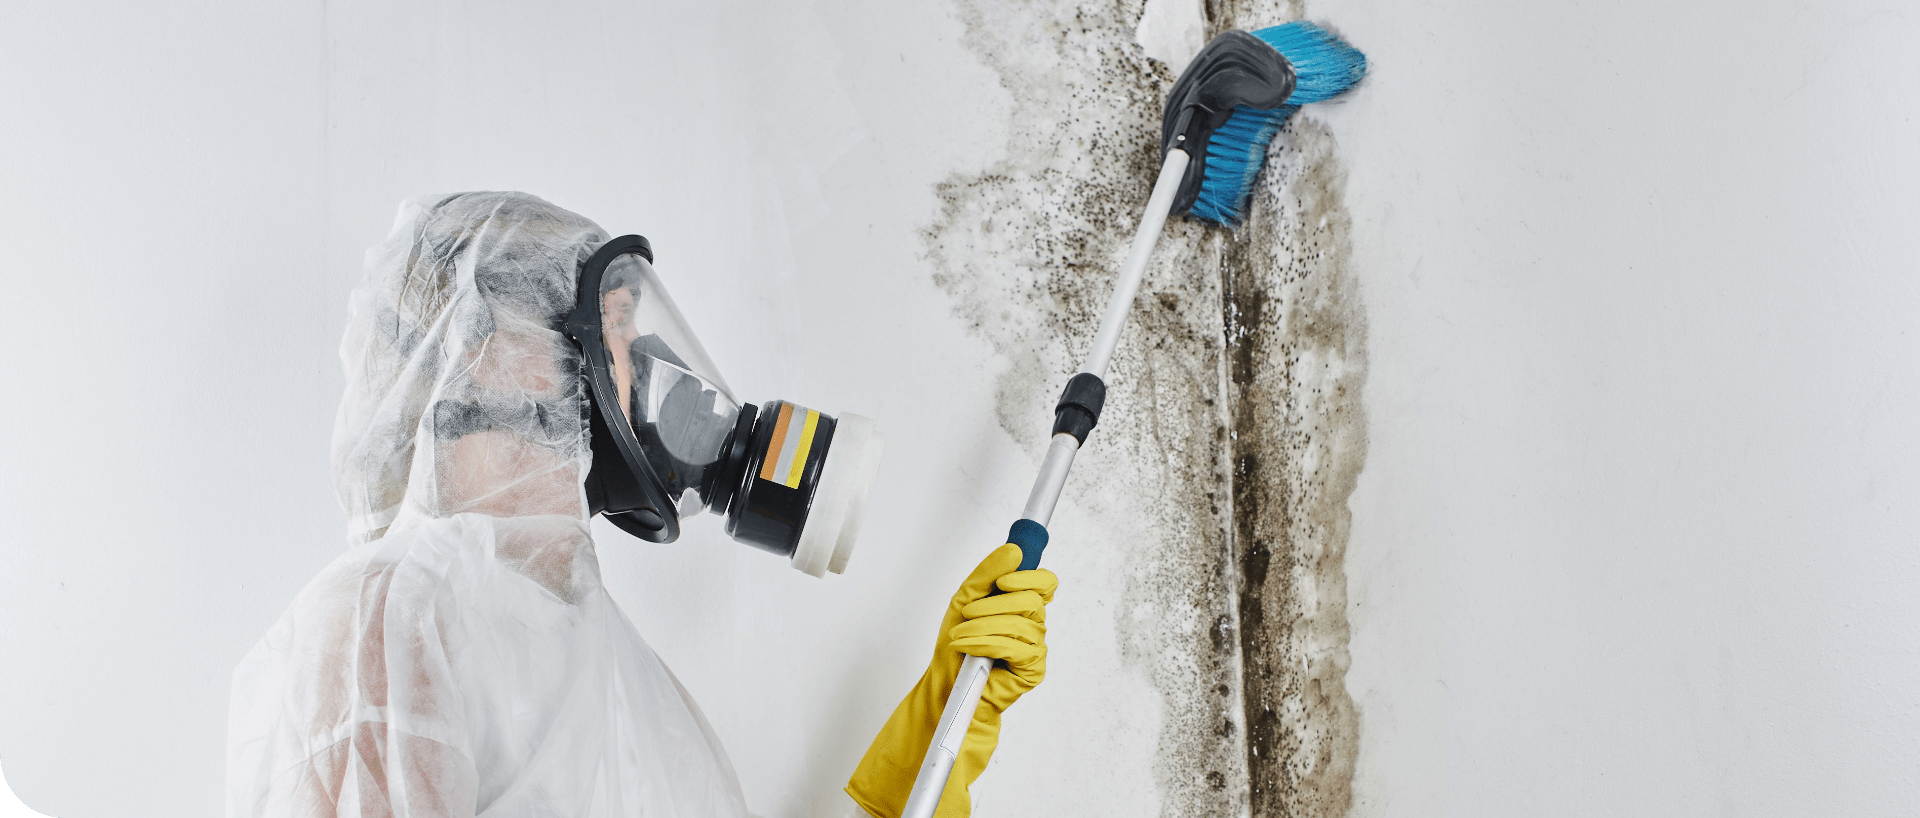 MoldRemoval | MoldPro | Alberta Asbestos and Mold Removal Specialists